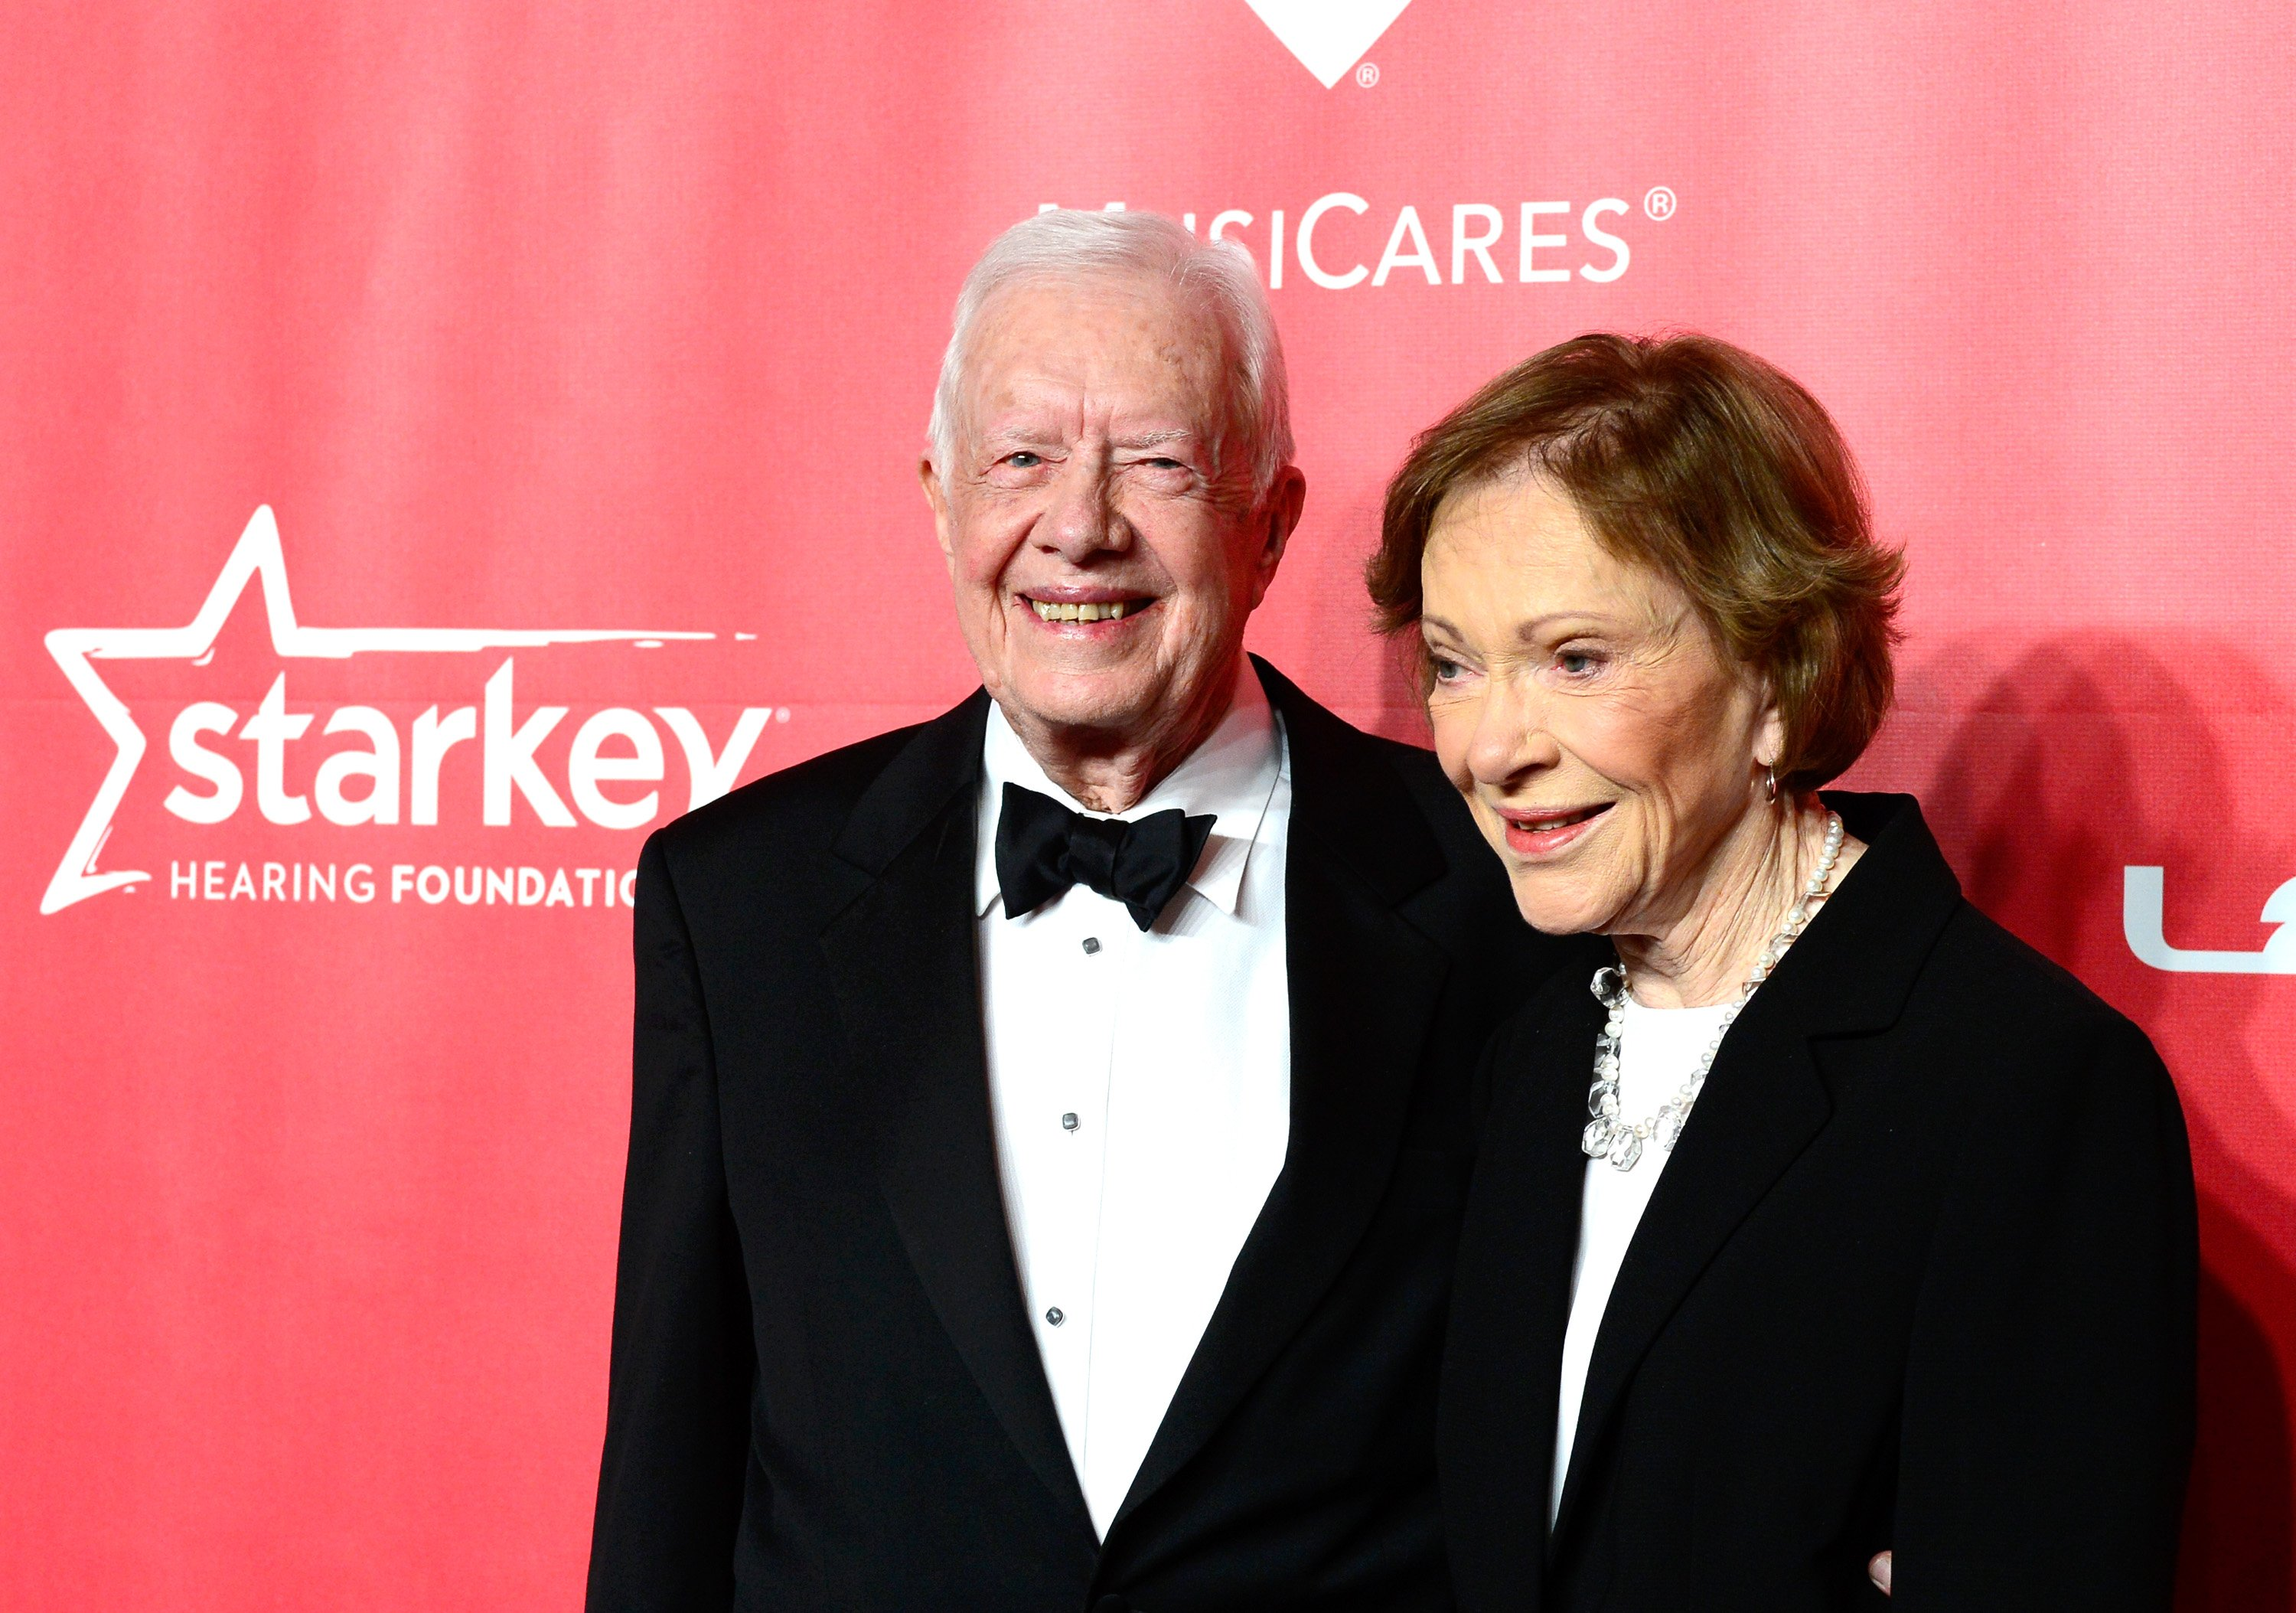 L'ancien président américain Jimmy Carter et l'ancienne première dame Rosalynn Carter à l'occasion du 25e anniversaire du Gala de la personnalité de l'année MusiCares en l'honneur de Bob Dylan au Los Angeles Convention Center le 6 février 2015 en Californie | Photo: Getty Images